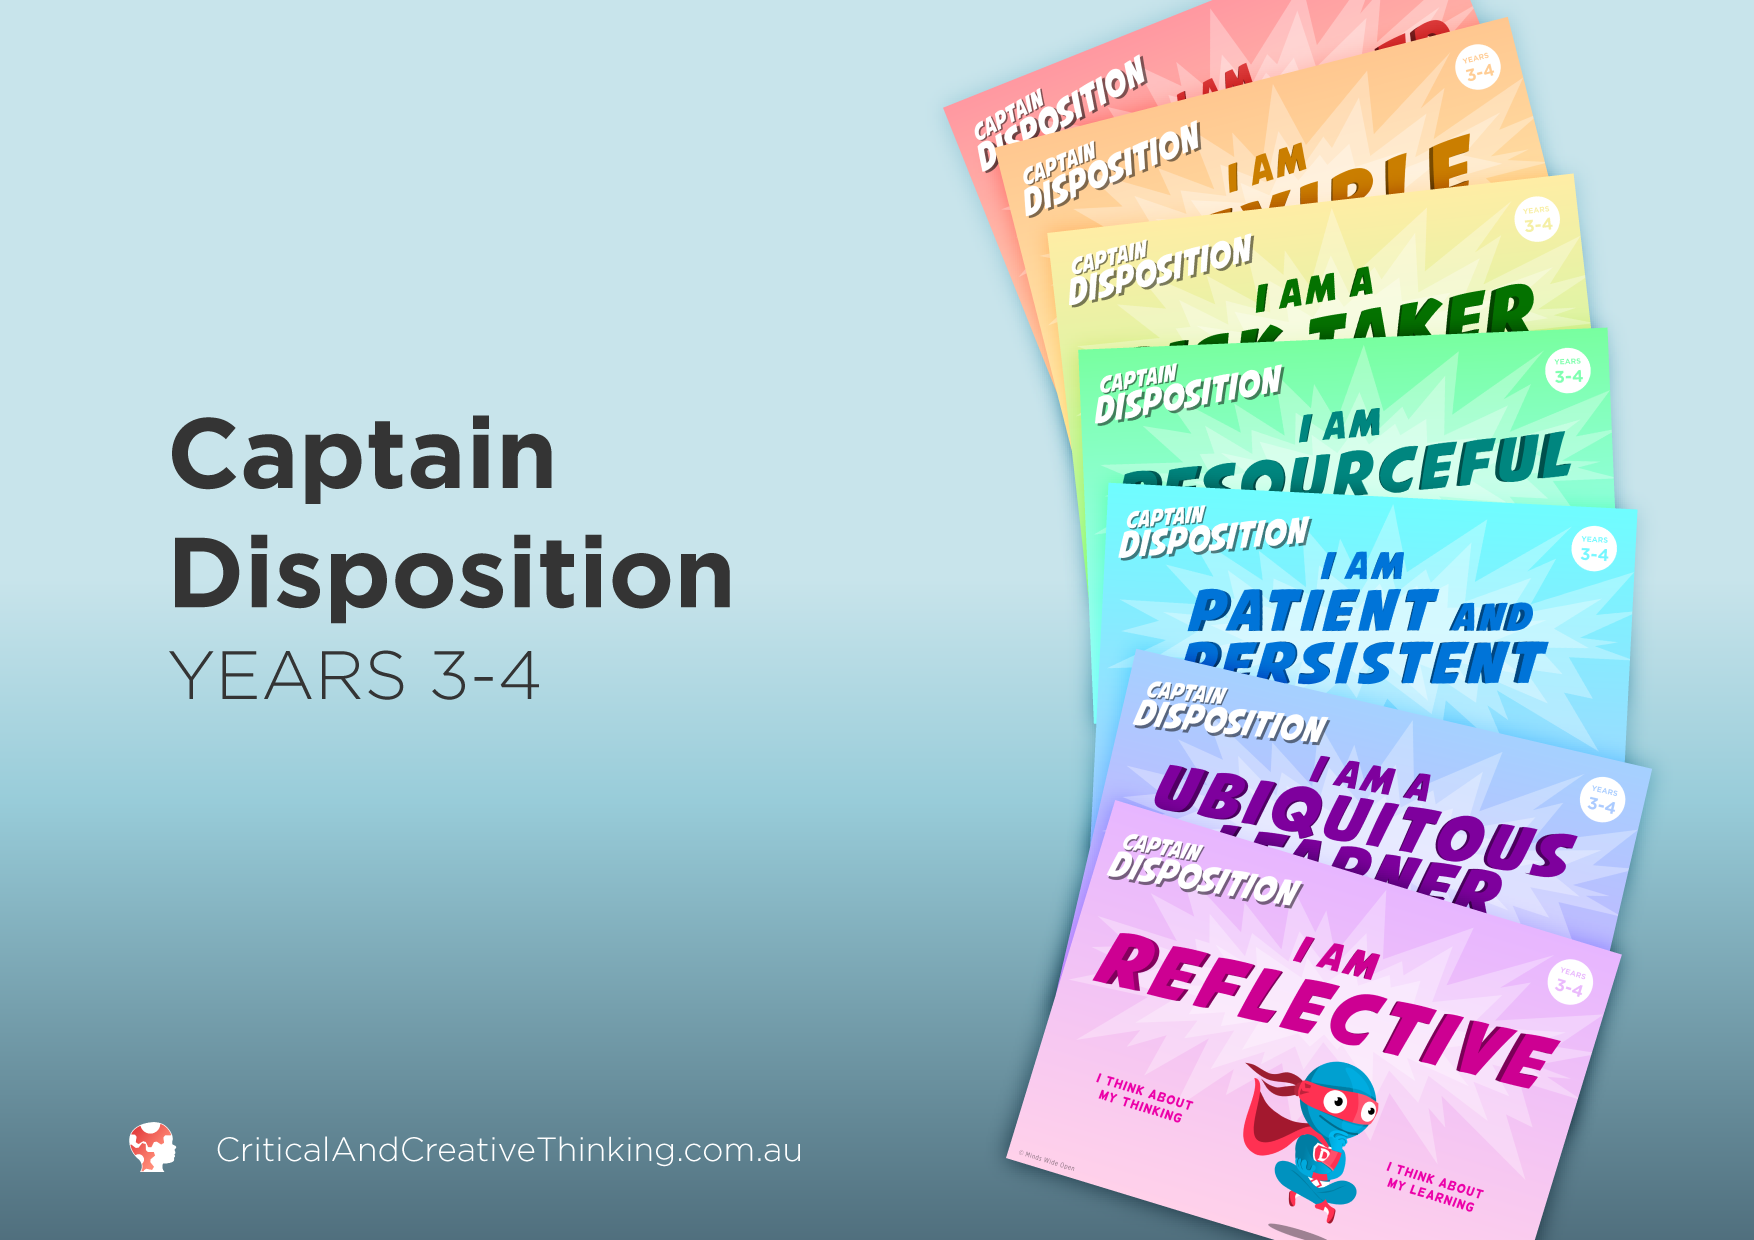 Captain Disposition Year 3 - 4